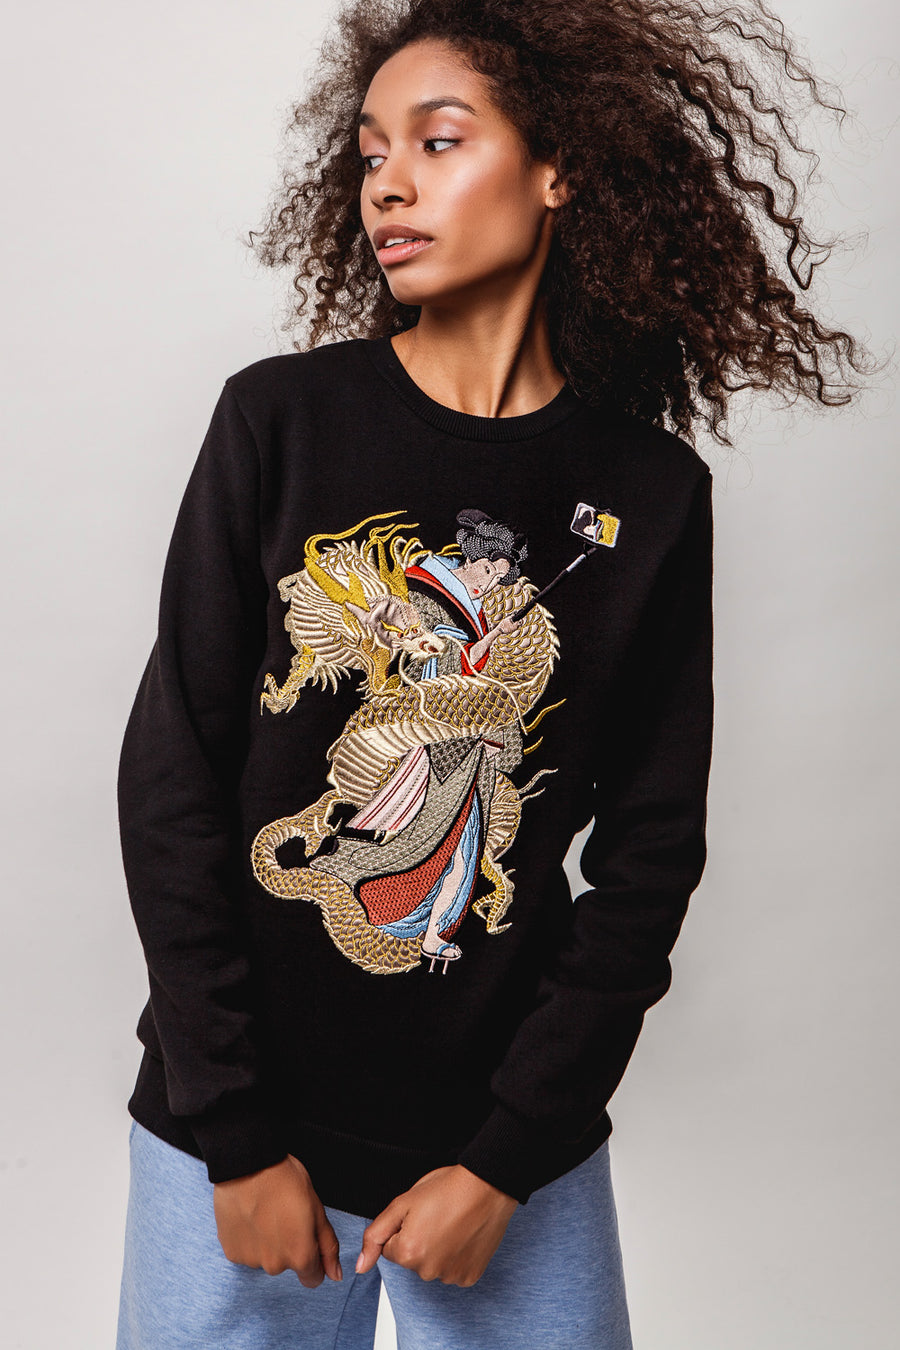 Girl w/ Dragon Sweatshirt